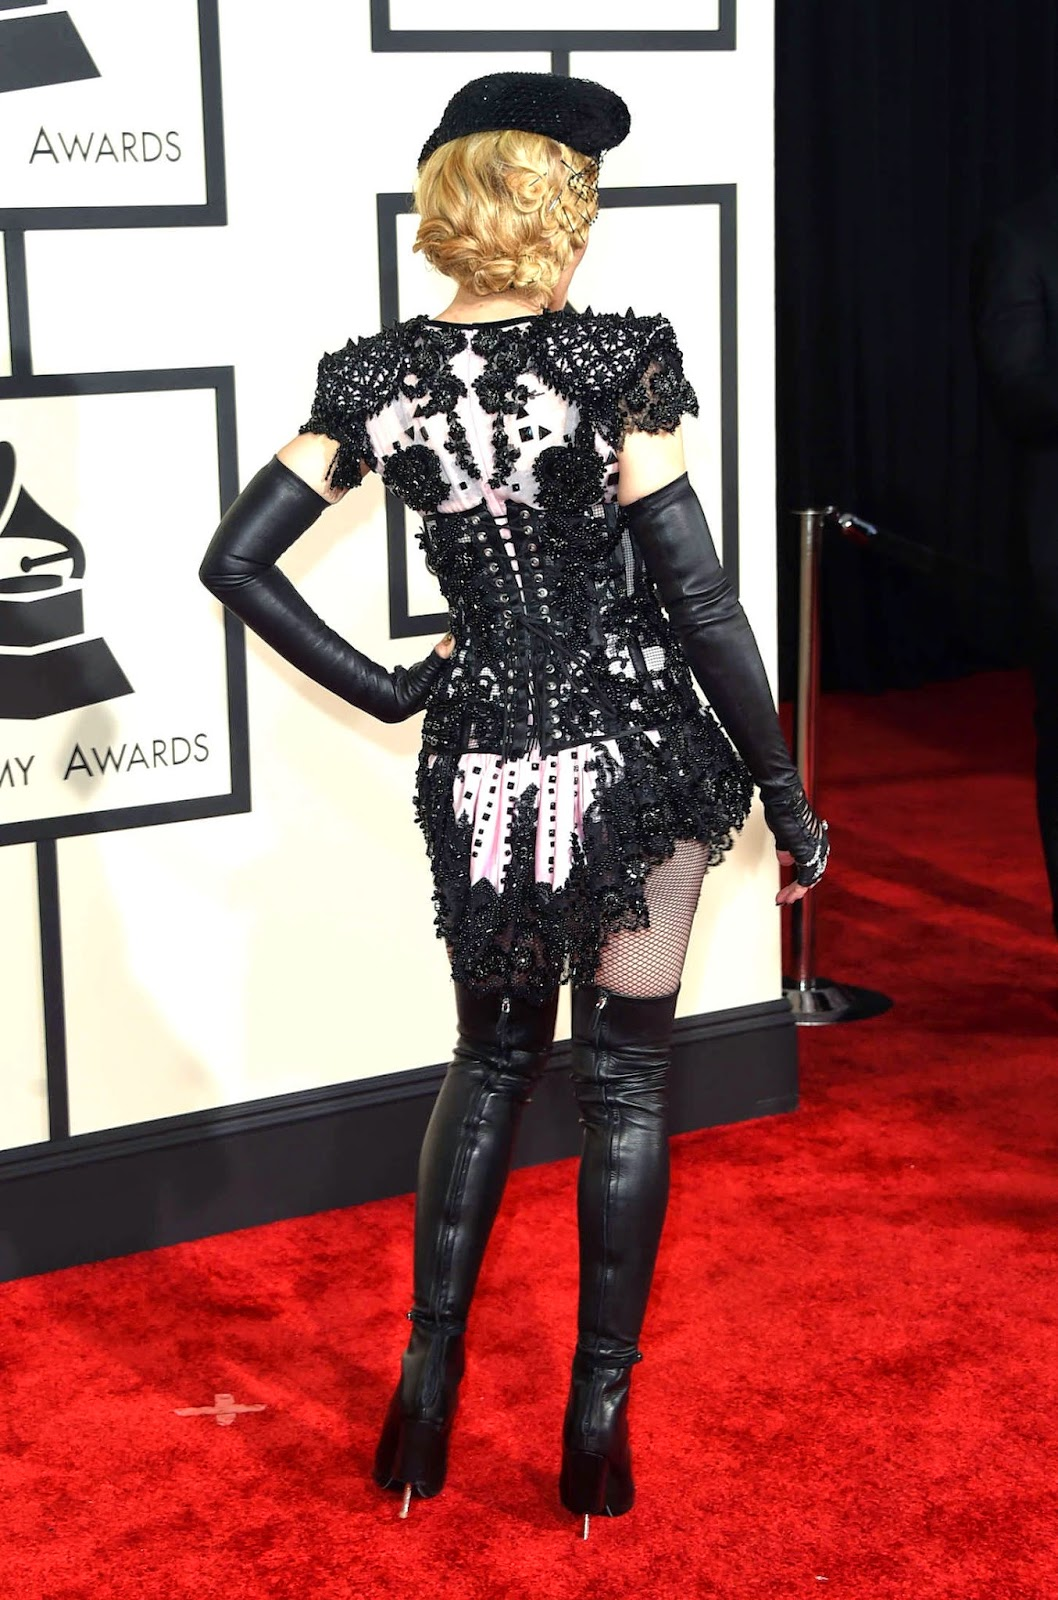 Madonna wears a burlesque inspired Givenchy dress to the 2015 Grammy Awards in LA